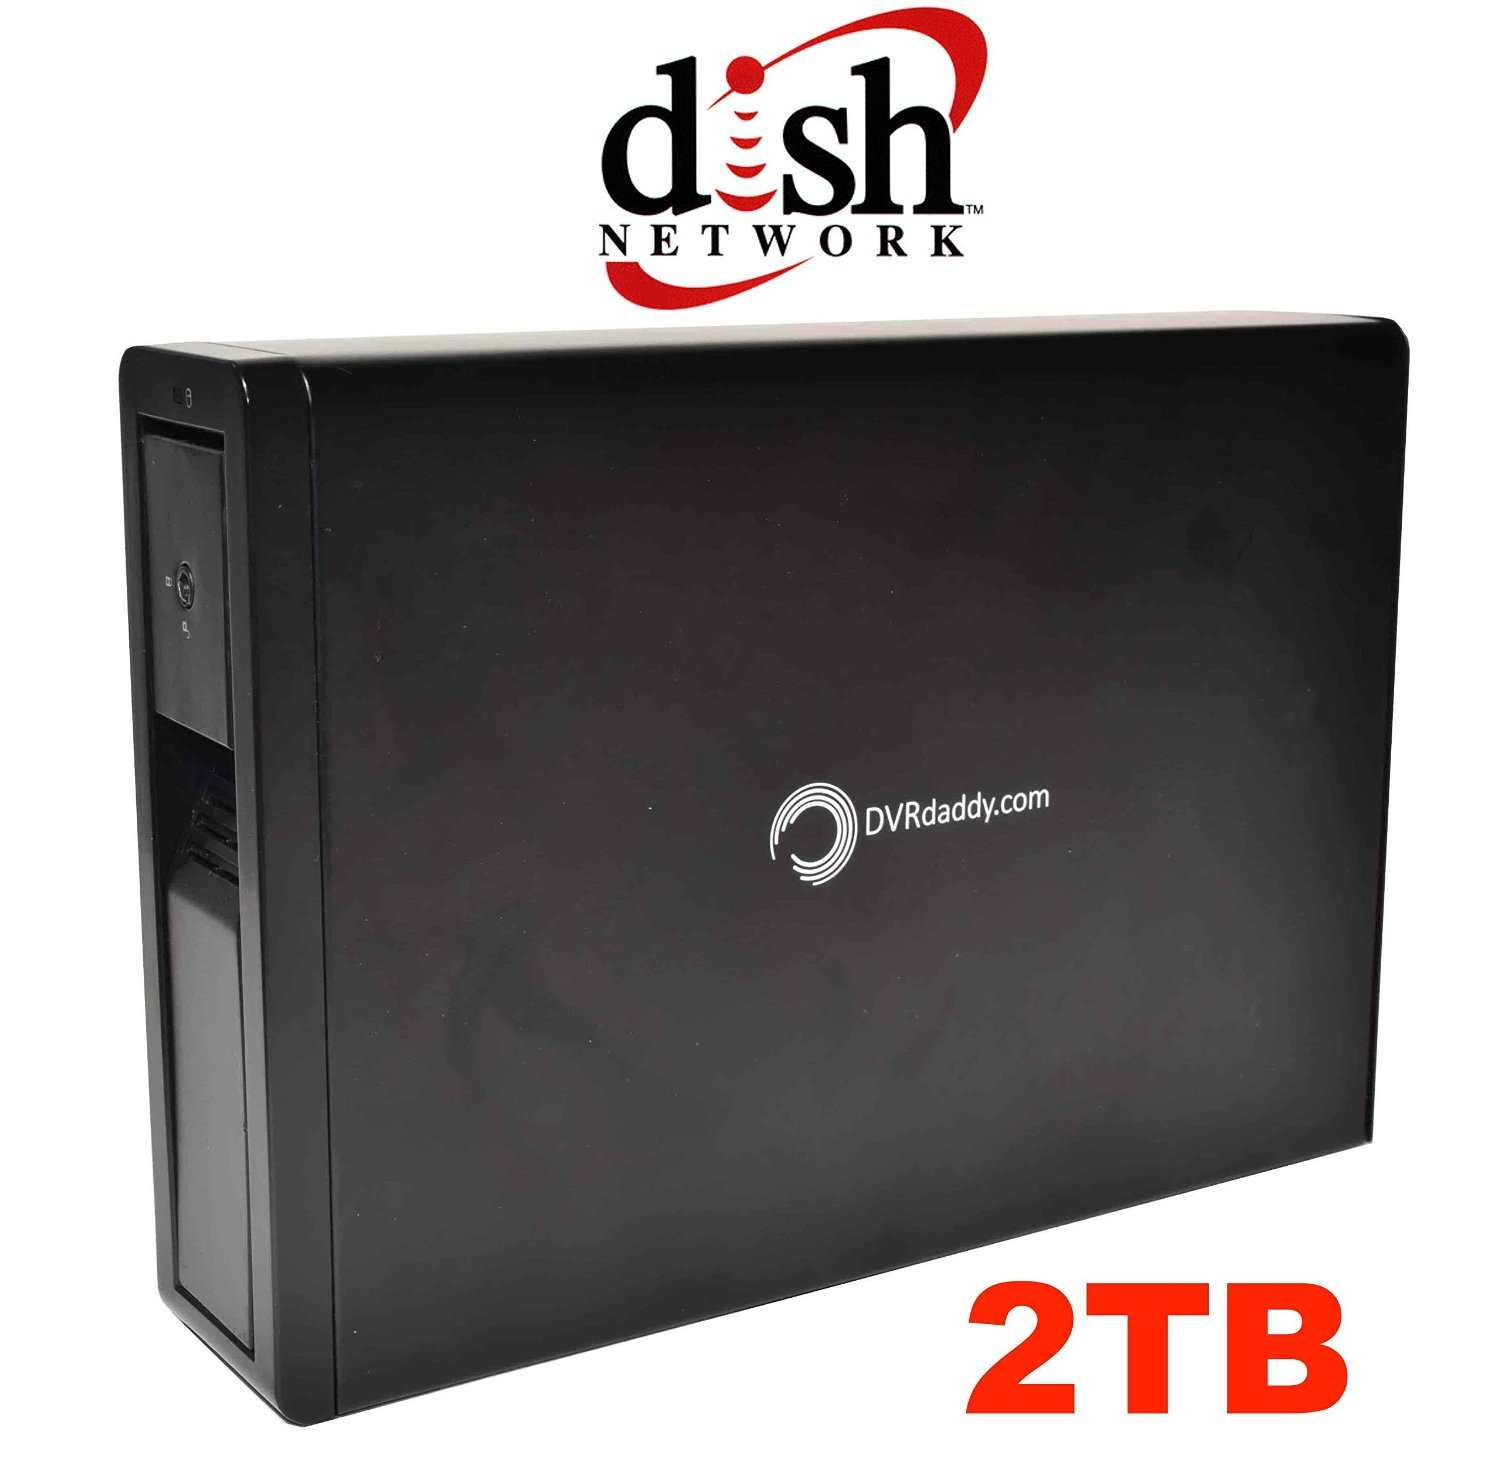 2TB DVRdaddy External DVR Hard Drive Expander For DISH Network ViP 211K 722 722K 622 612 922 DVRs & Hopper. +2000 Hours Recording Capacity!